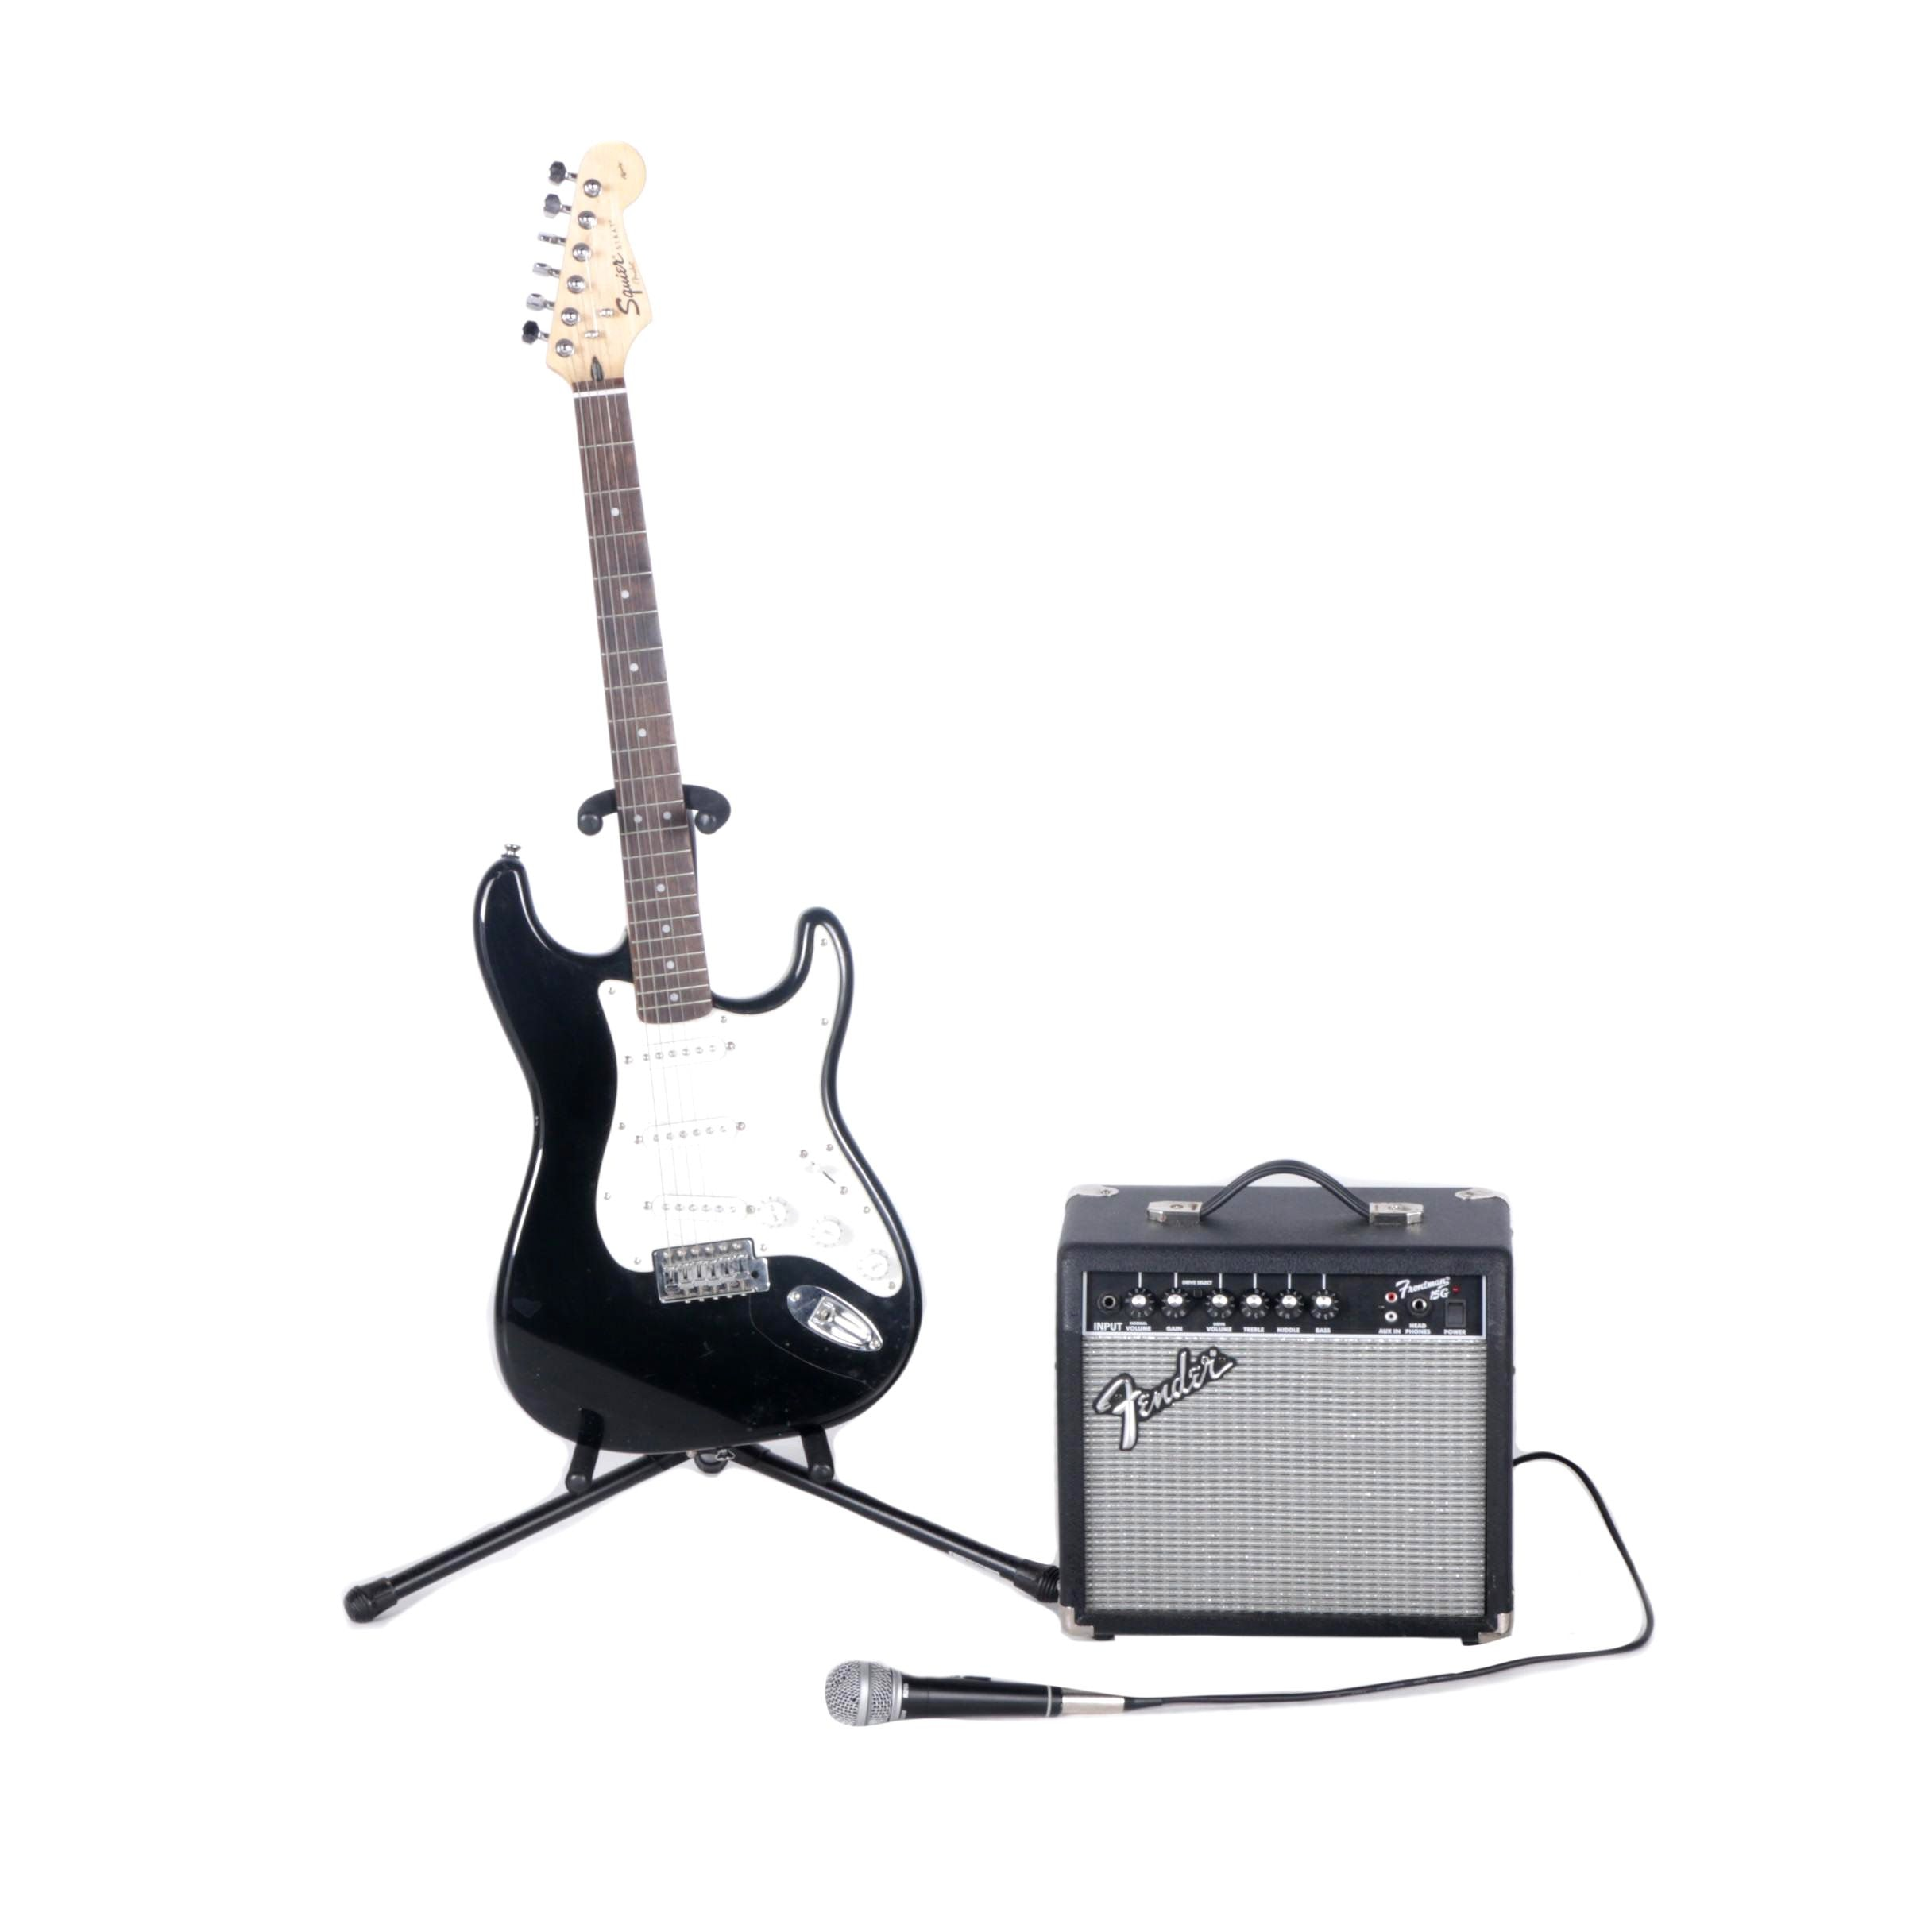 Squier Strat Guitar, Stand and Frontman 15 G Amplifier